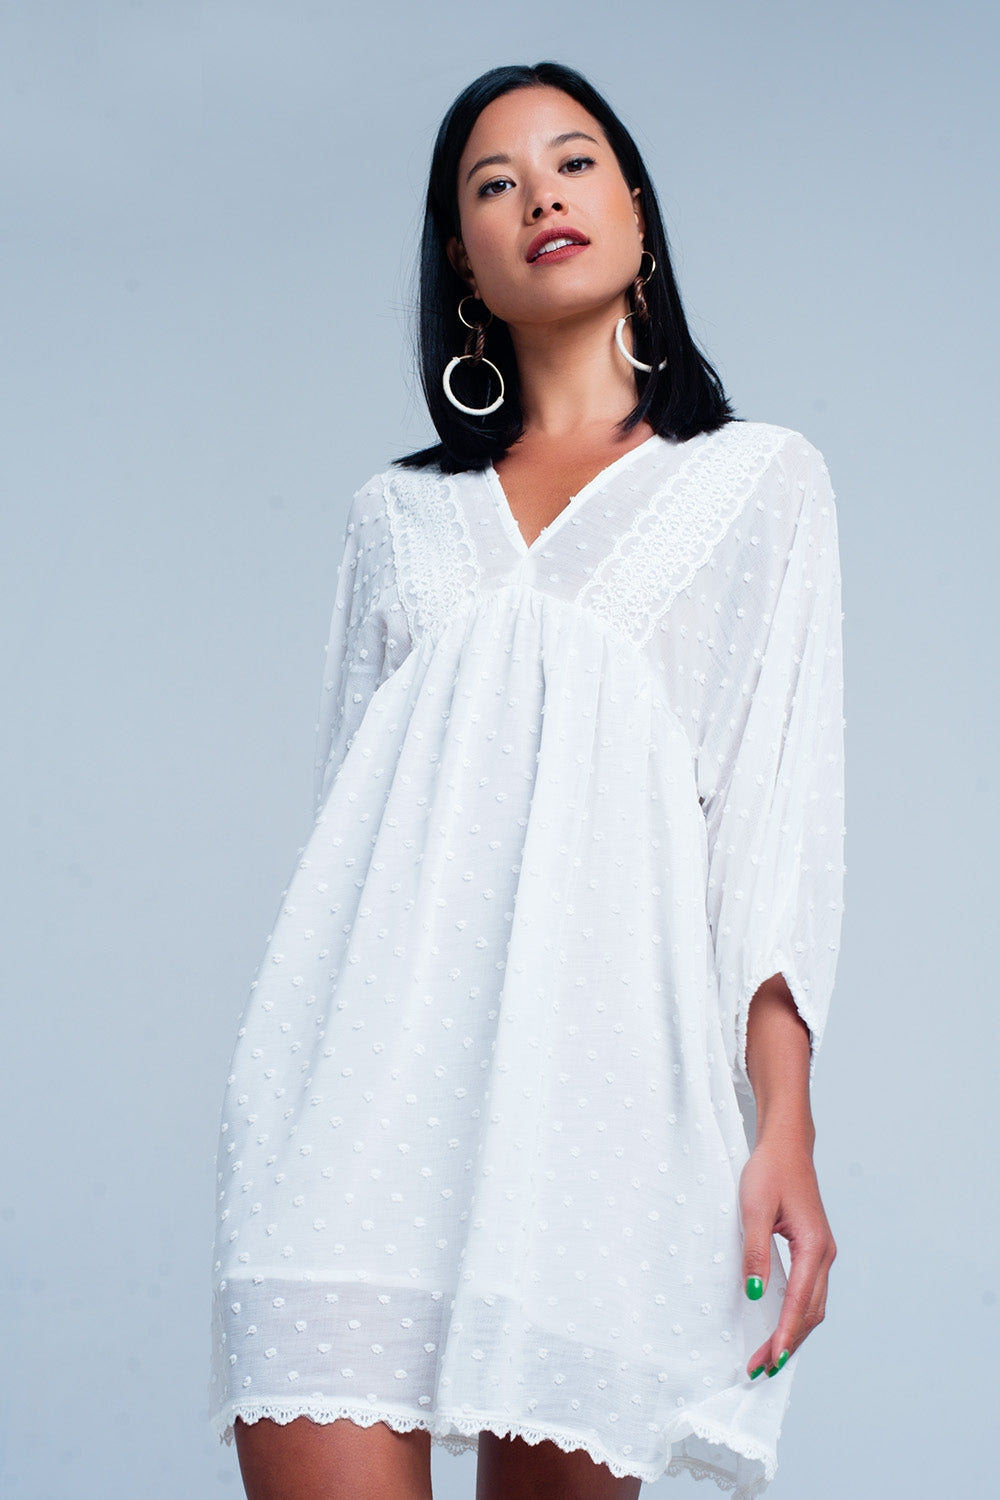 Textured white dress - KATANA FASHION BOUTIQUE